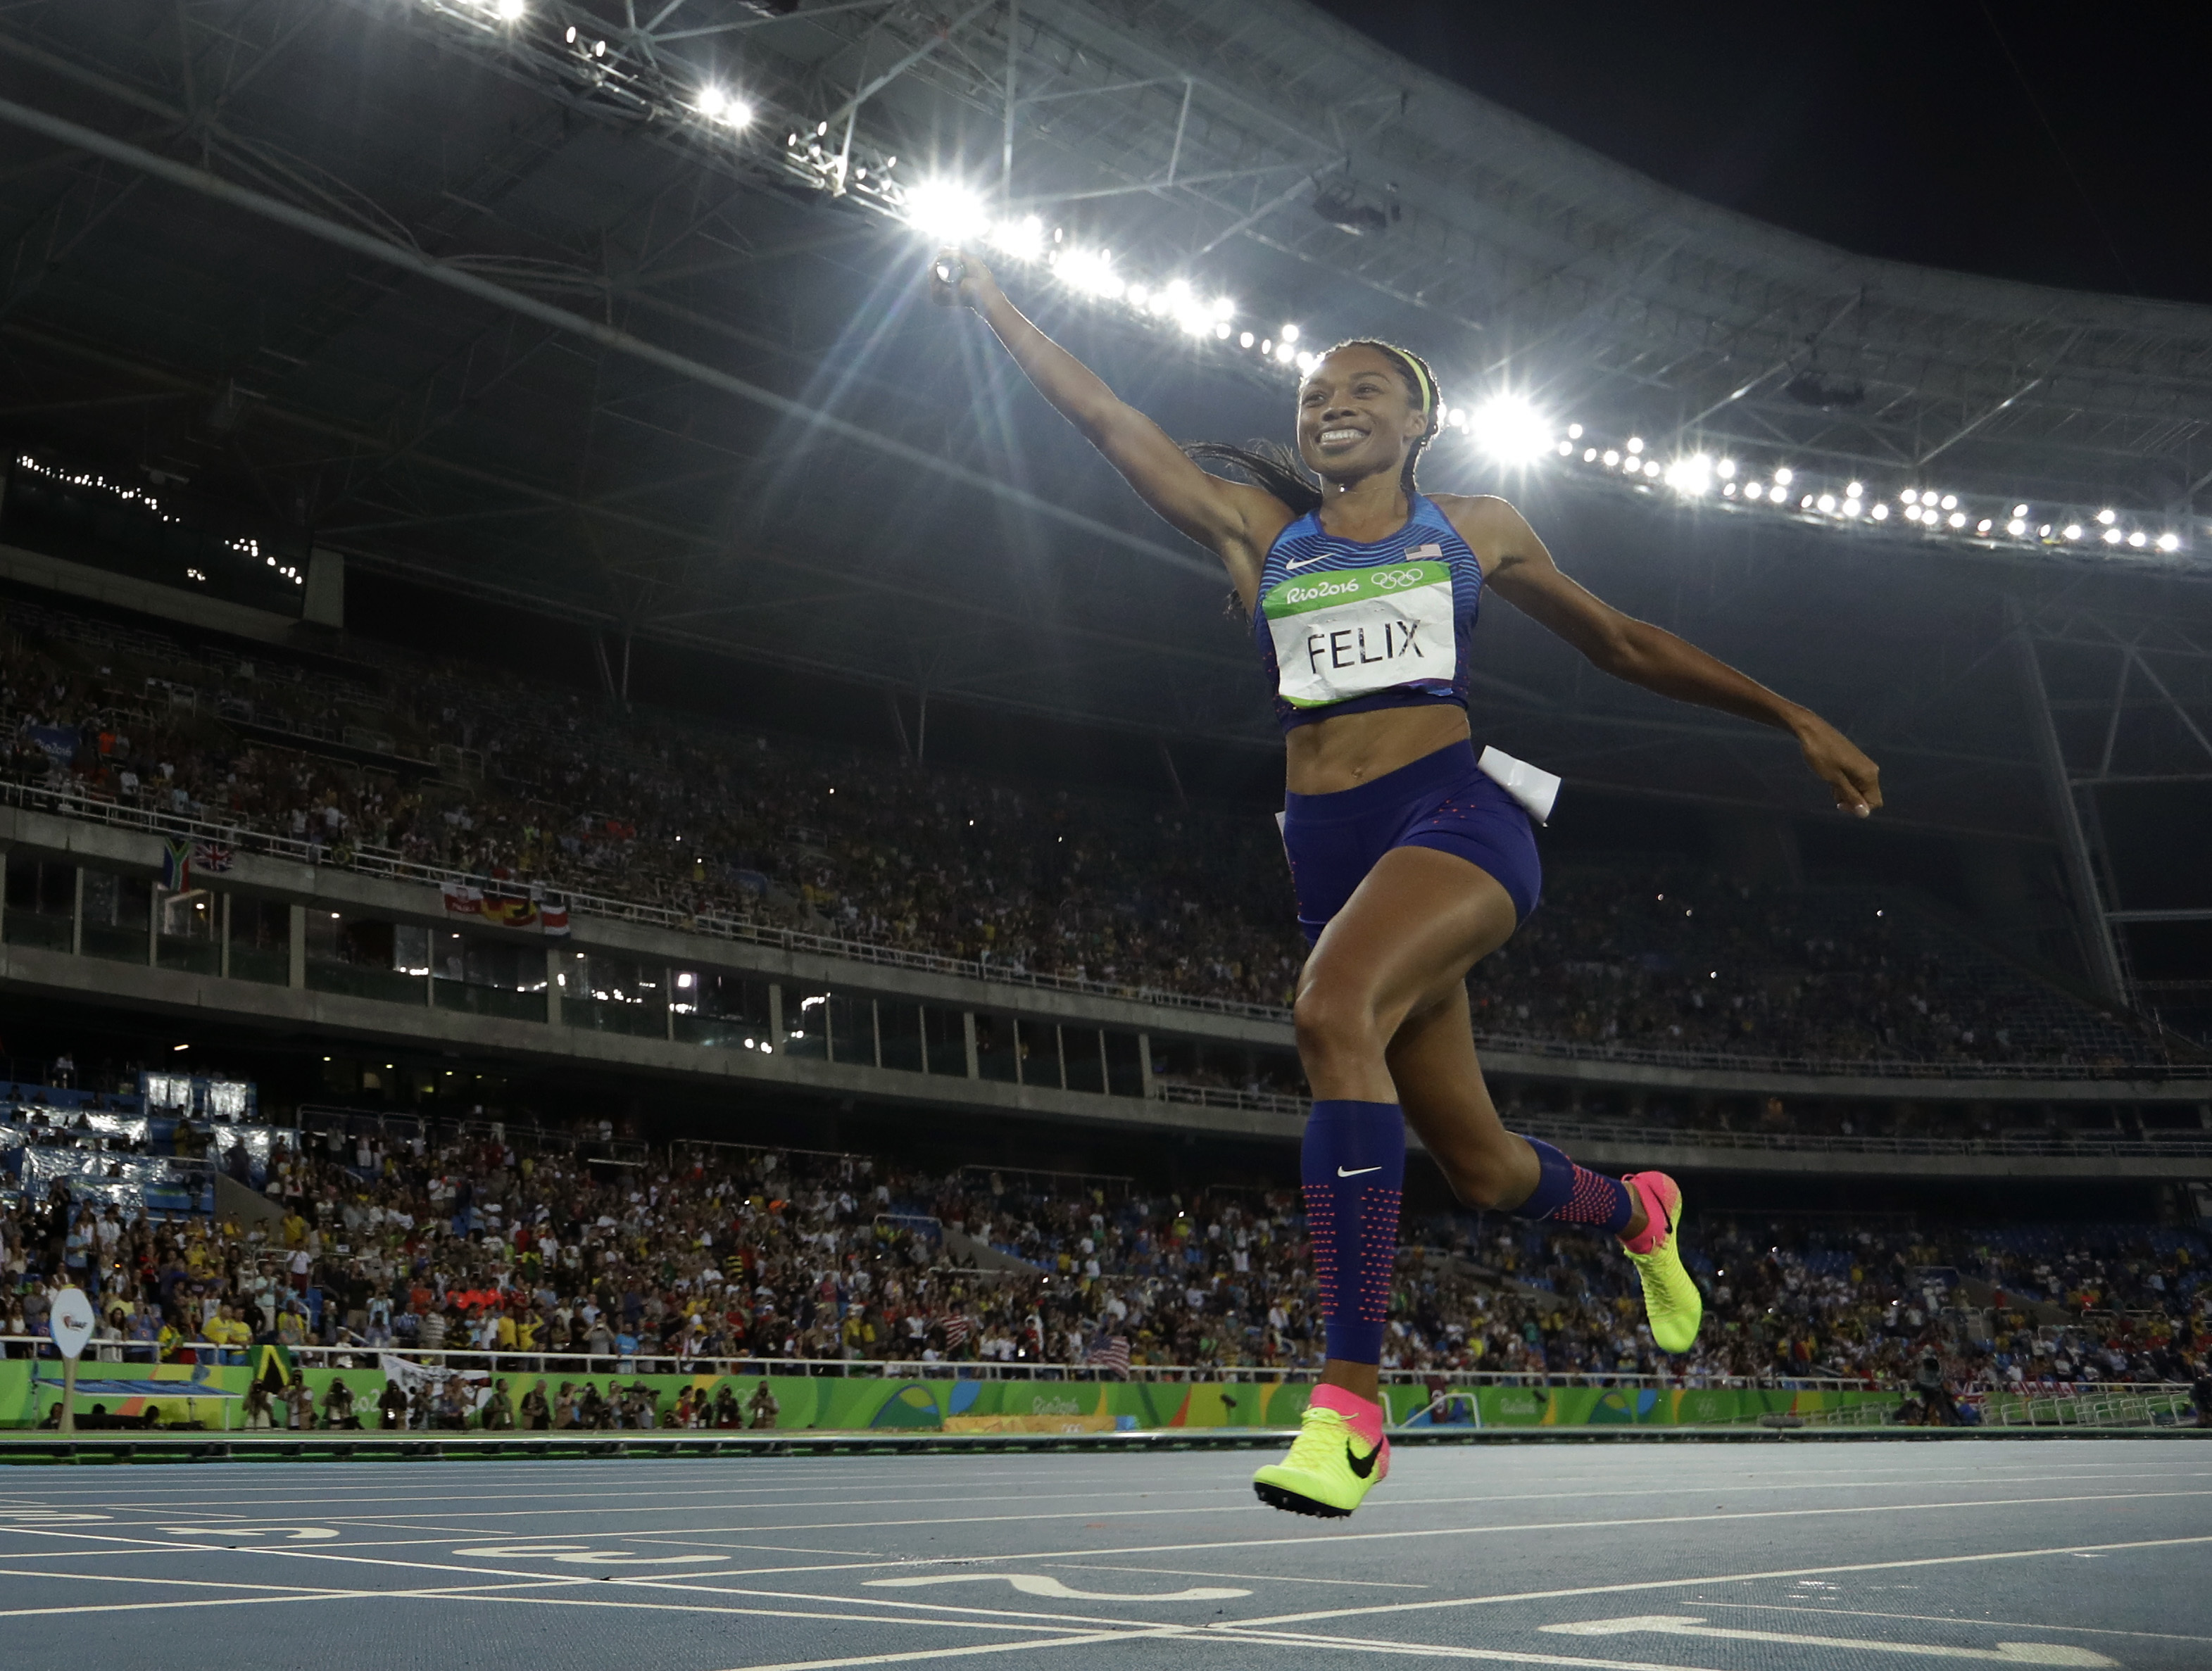 The United States' Allyson Felix crosses the line to capture the gold medal in the women's 4x400-meter final on Saturday at the 2016 Rio Olympics. | AP